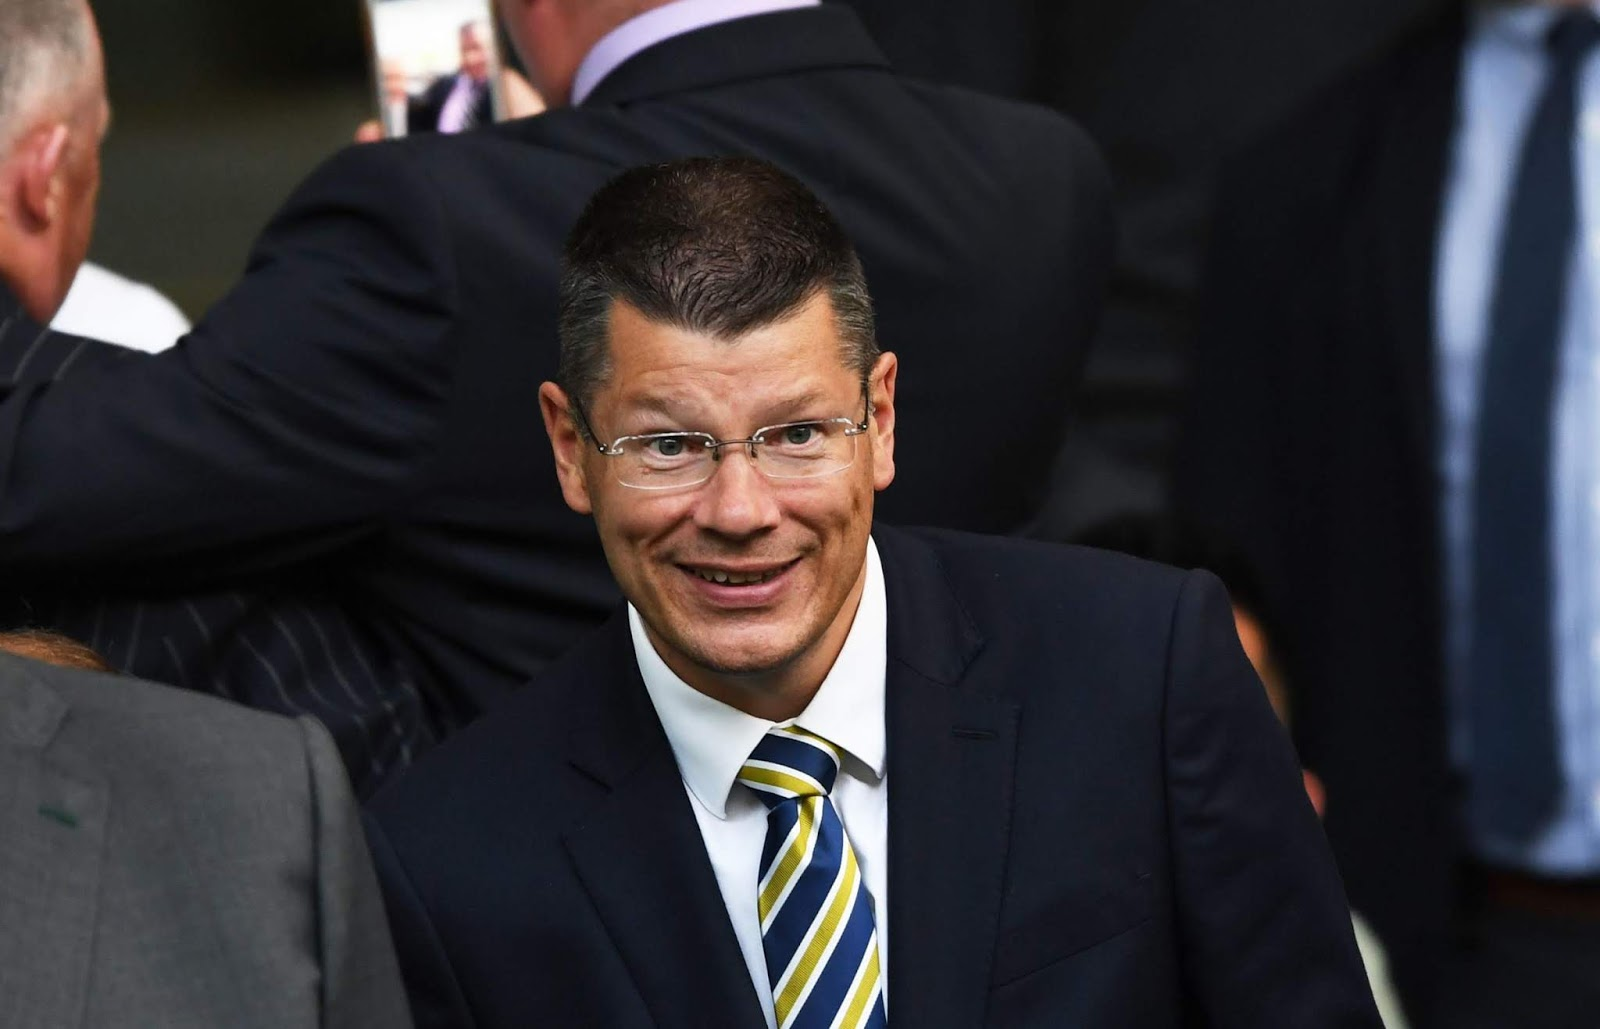 SPFL clubs have just sent a big message to Doncaster